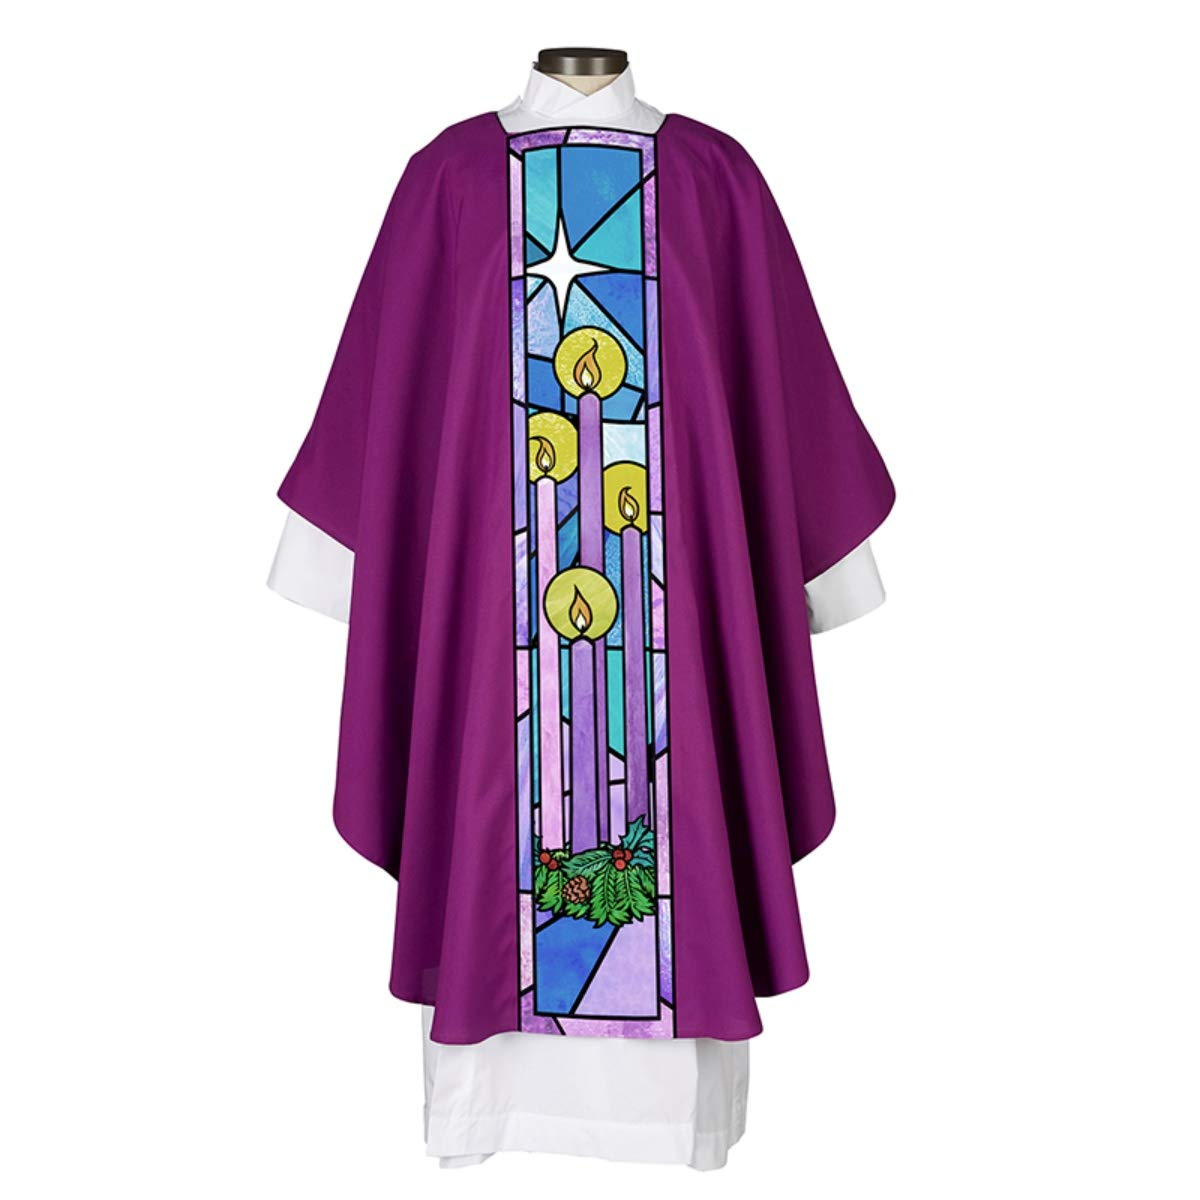 Clergy Robe Patterns – Patterns Gallery